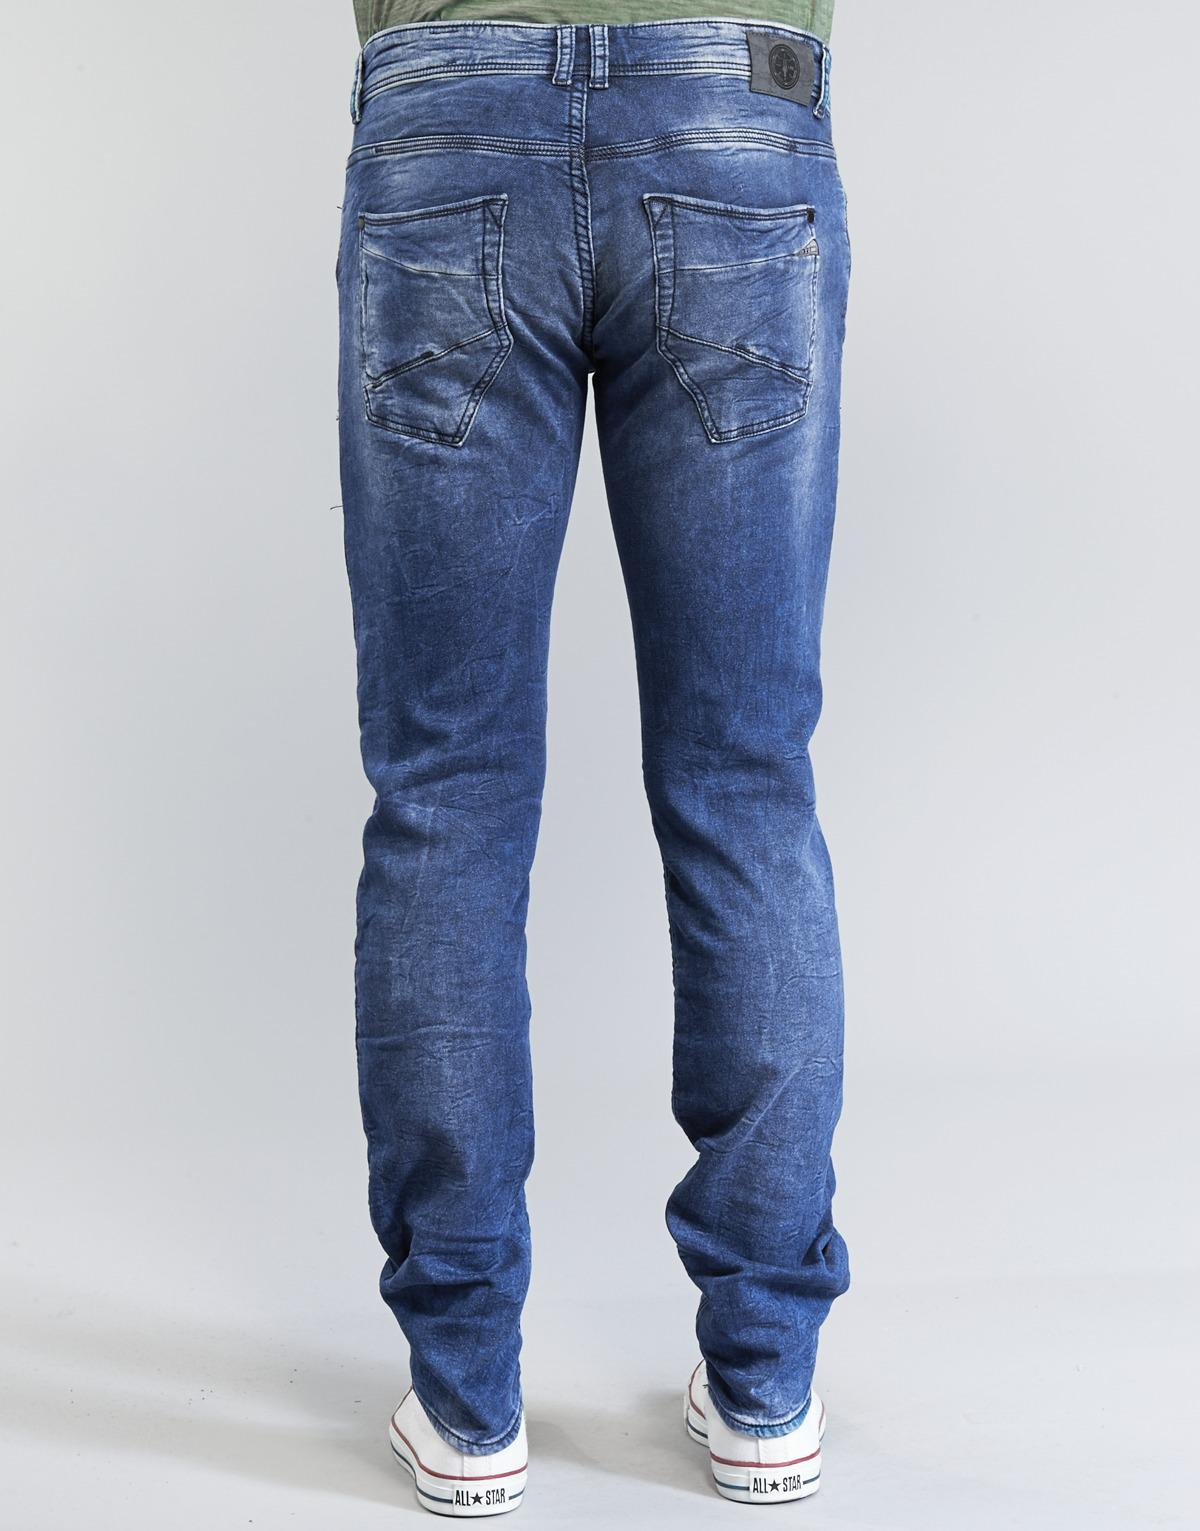 Le Temps Des Cerises Denim 711 Jogg Men's Skinny Jeans In Blue for Men